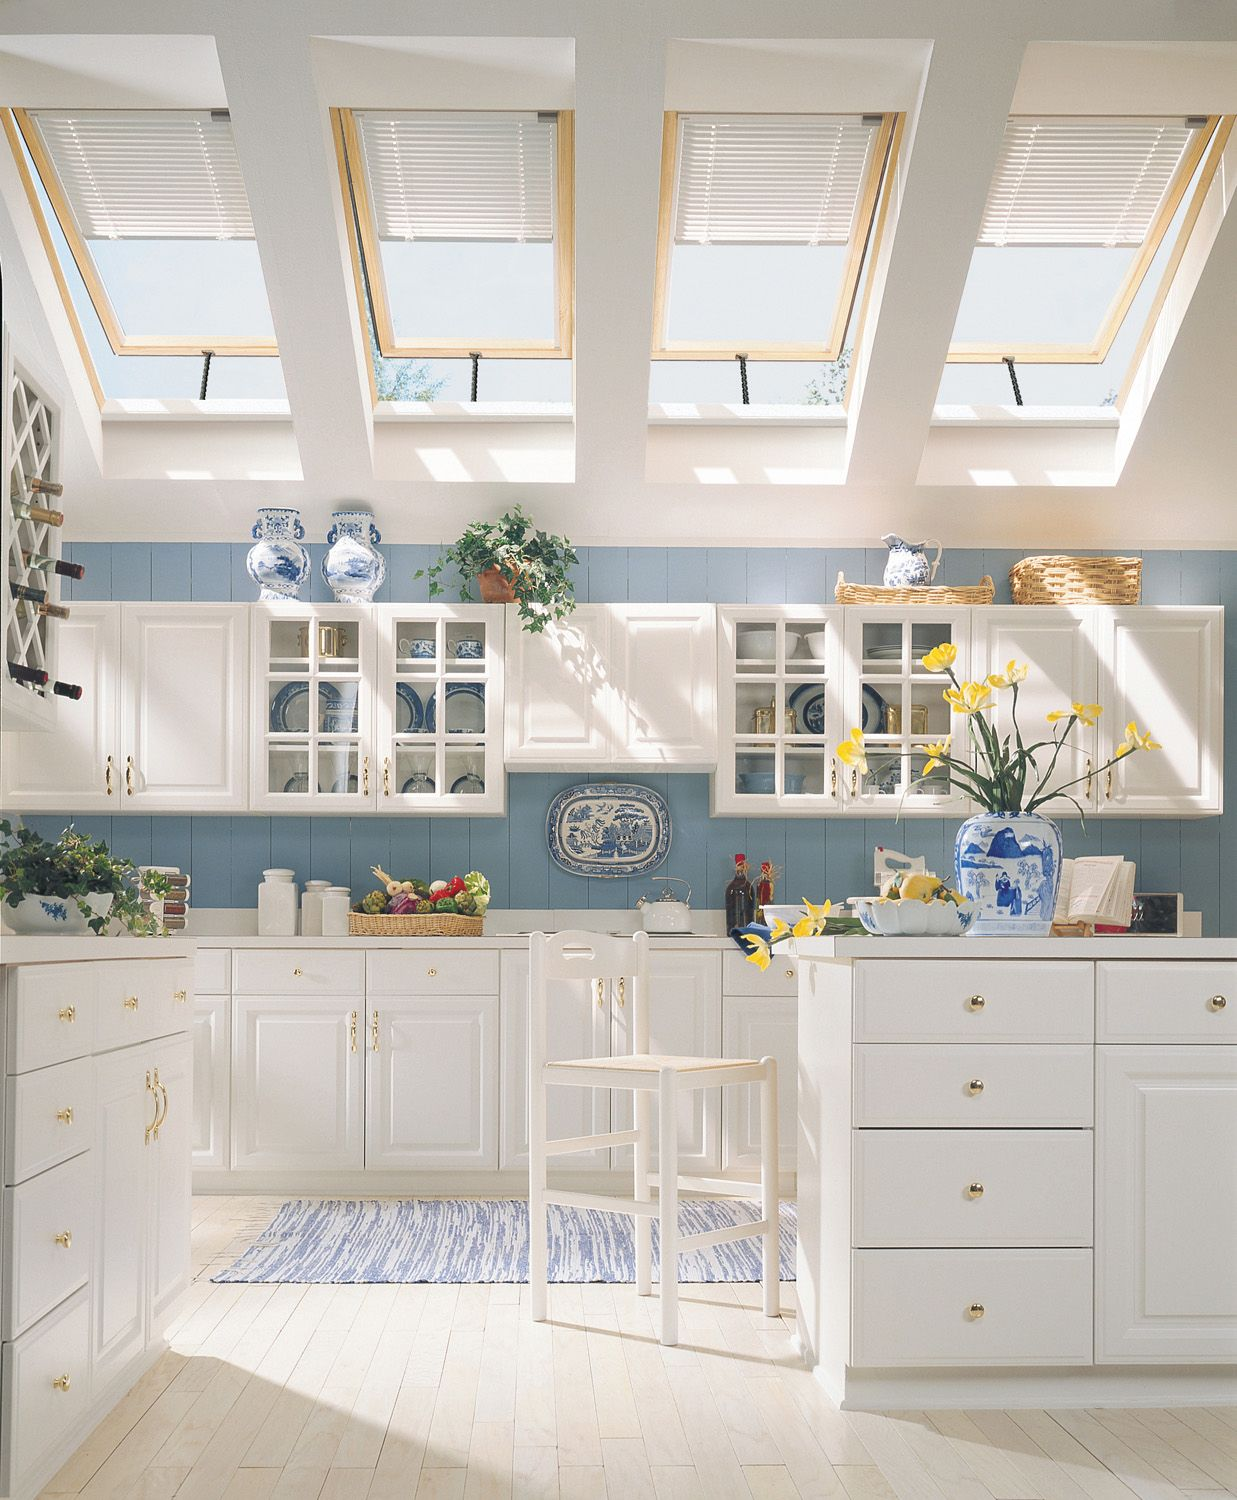 10 Scrumptious Skylit Kitchens Skylight Kitchens And Natural Light